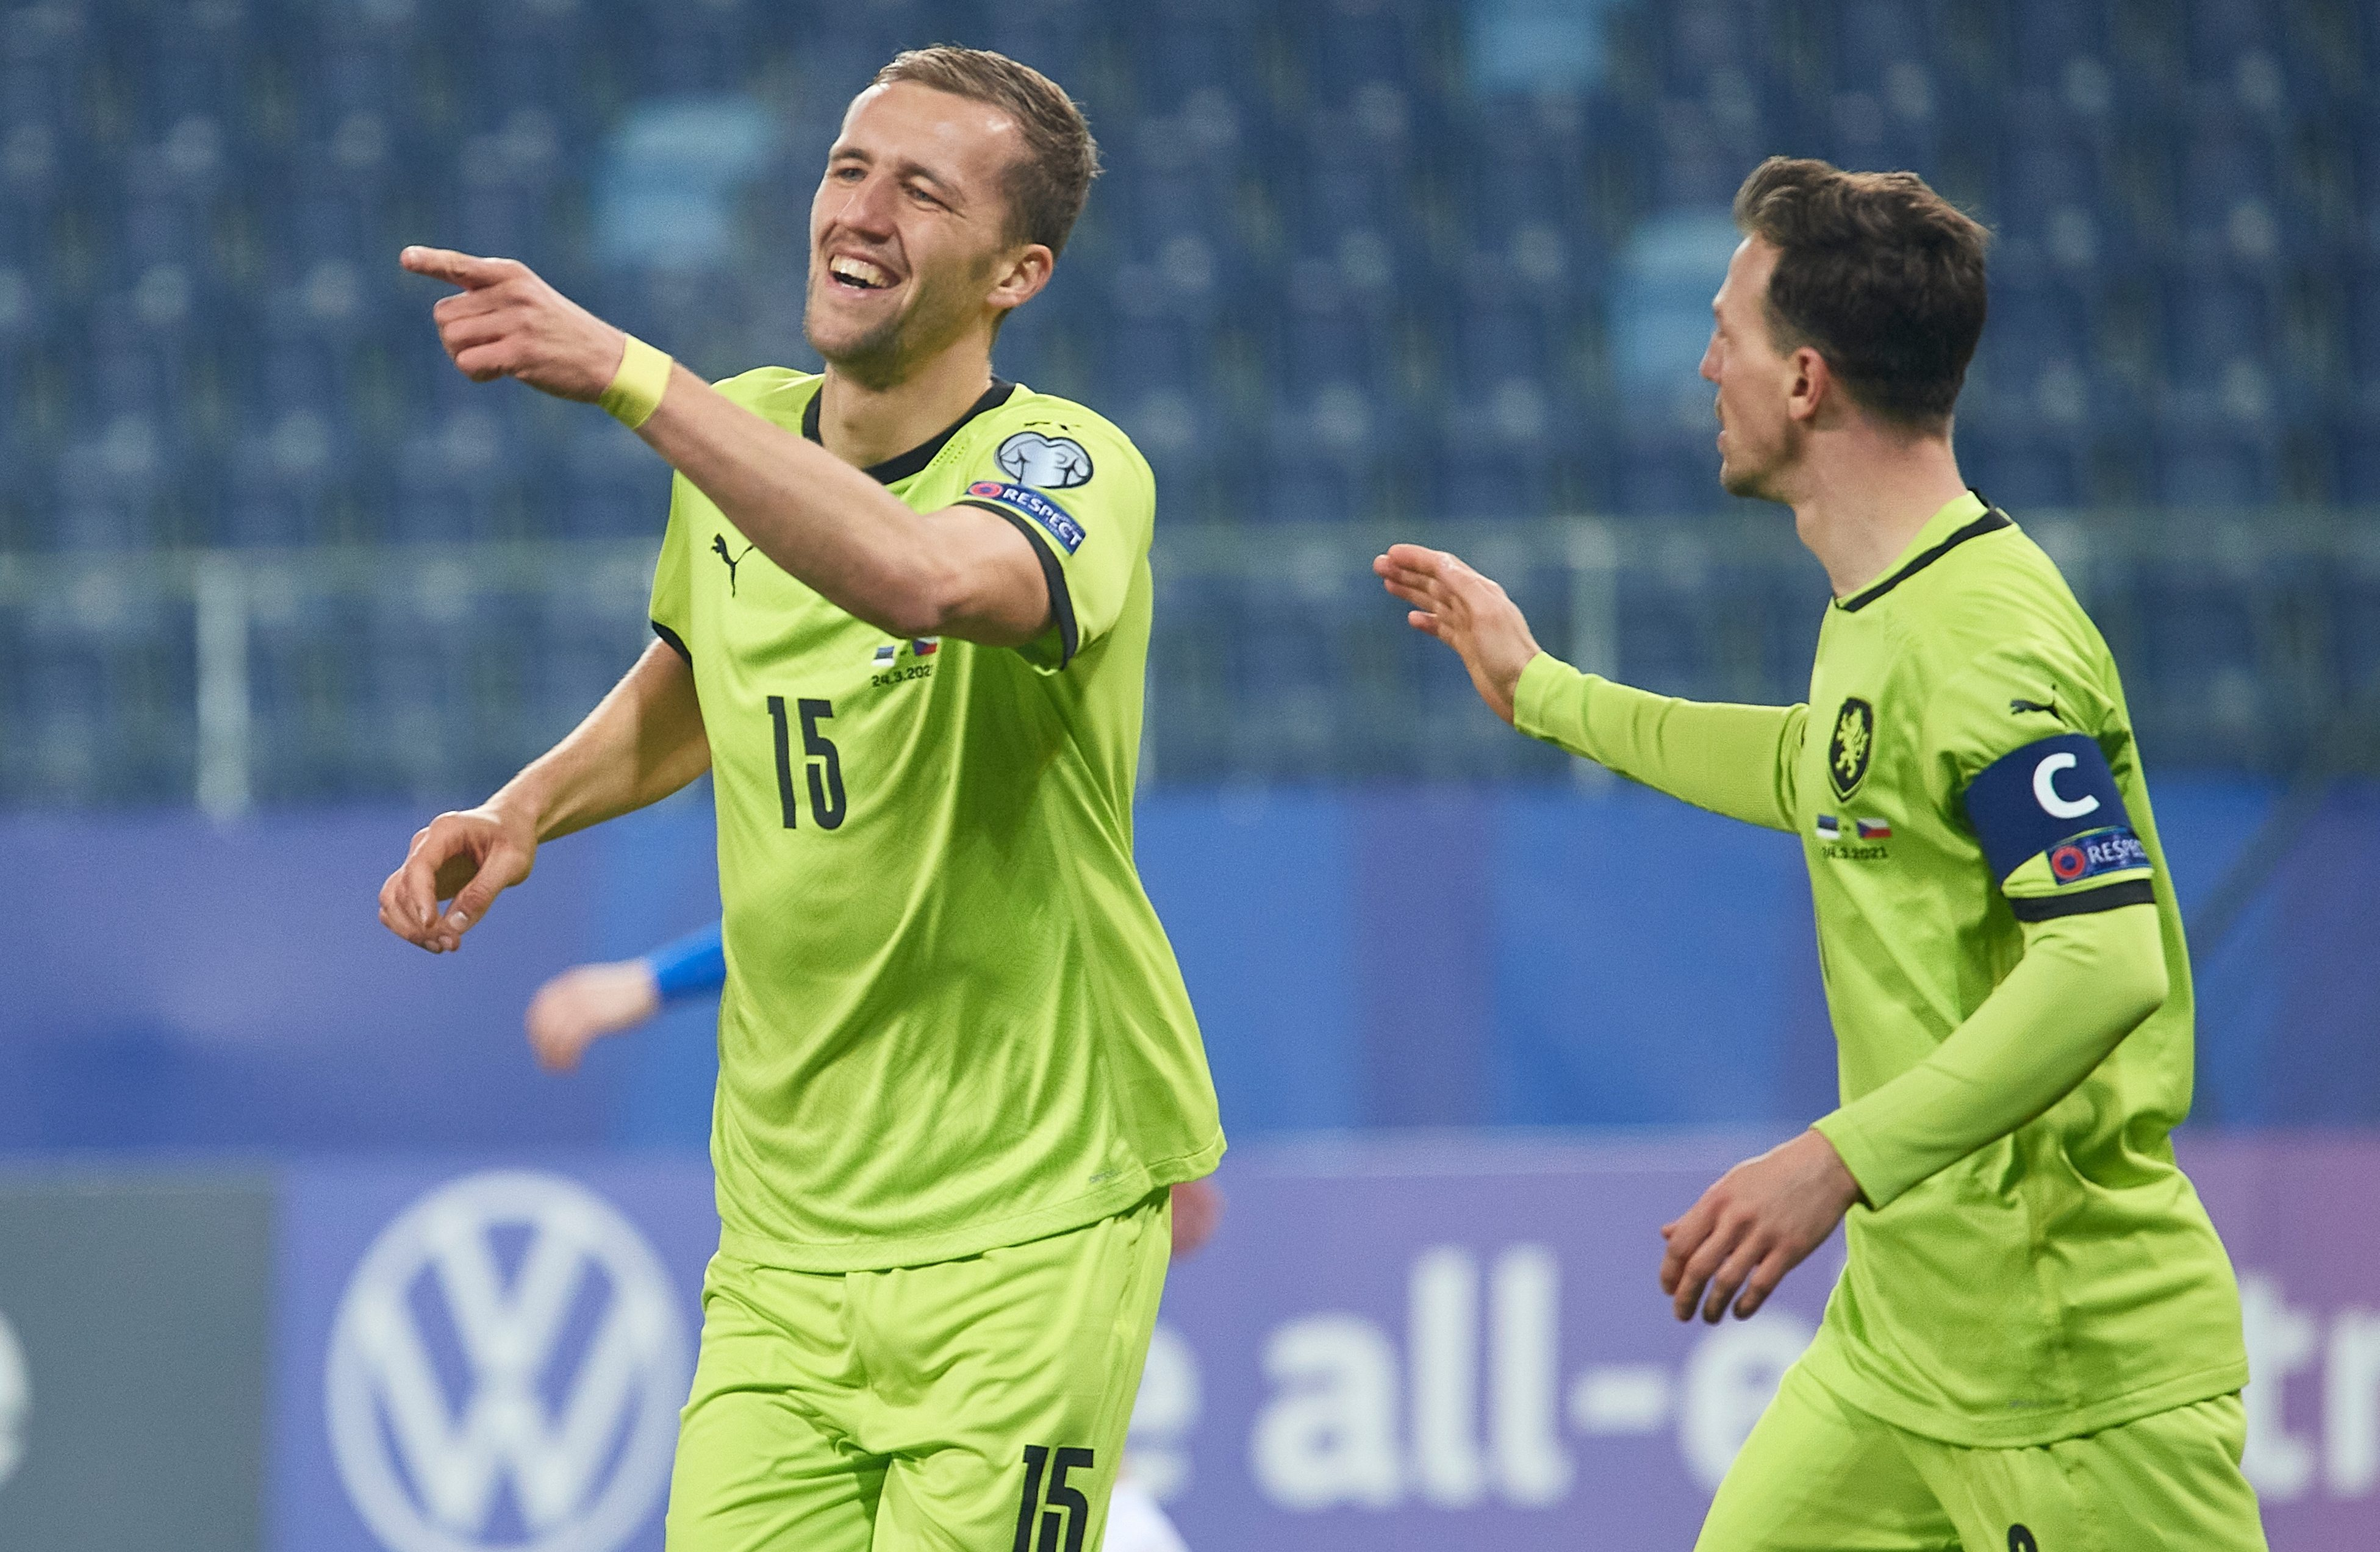 West Ham ace Tomas Soucek hits first Czech Republic HAT-TRICK as Wales and Republic of Ireland stumble in World Cup qualifying openers